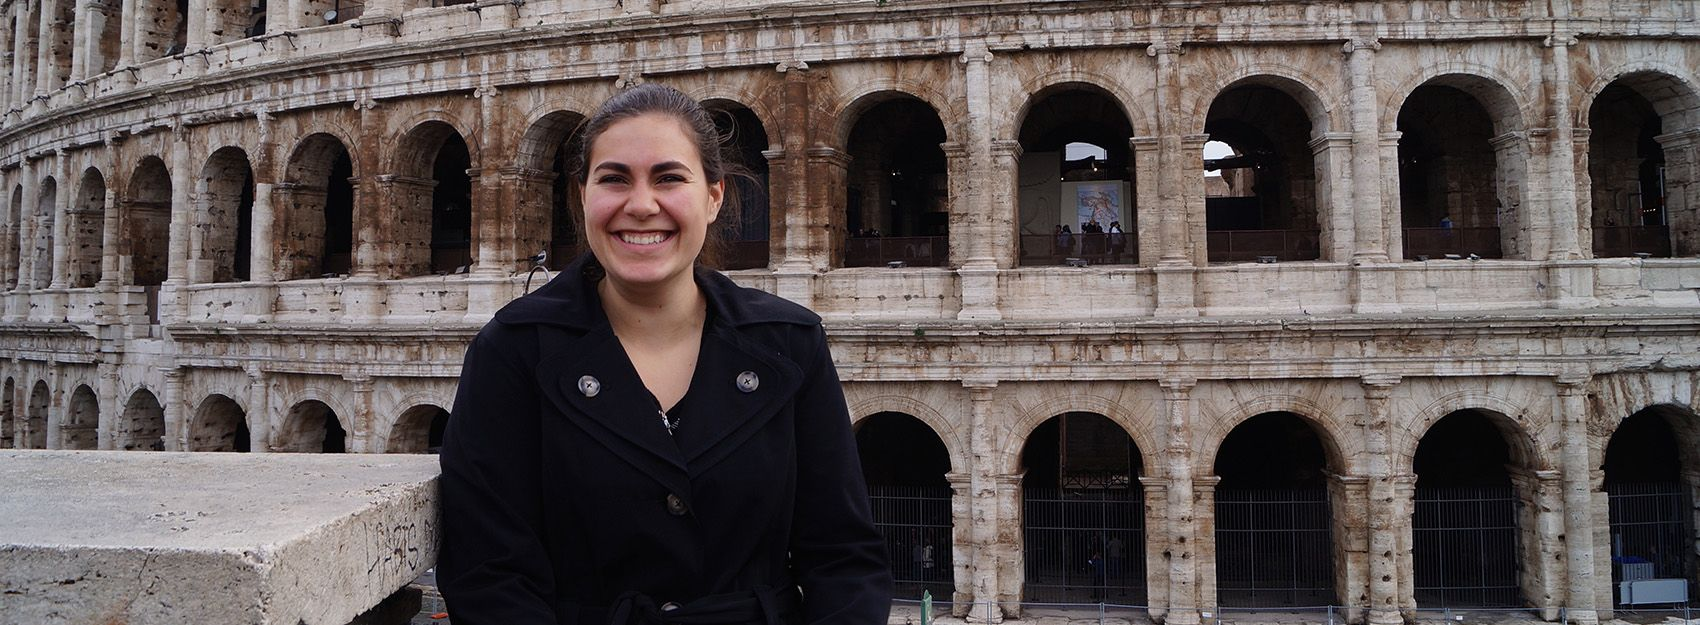 student standing in front of Colloseum